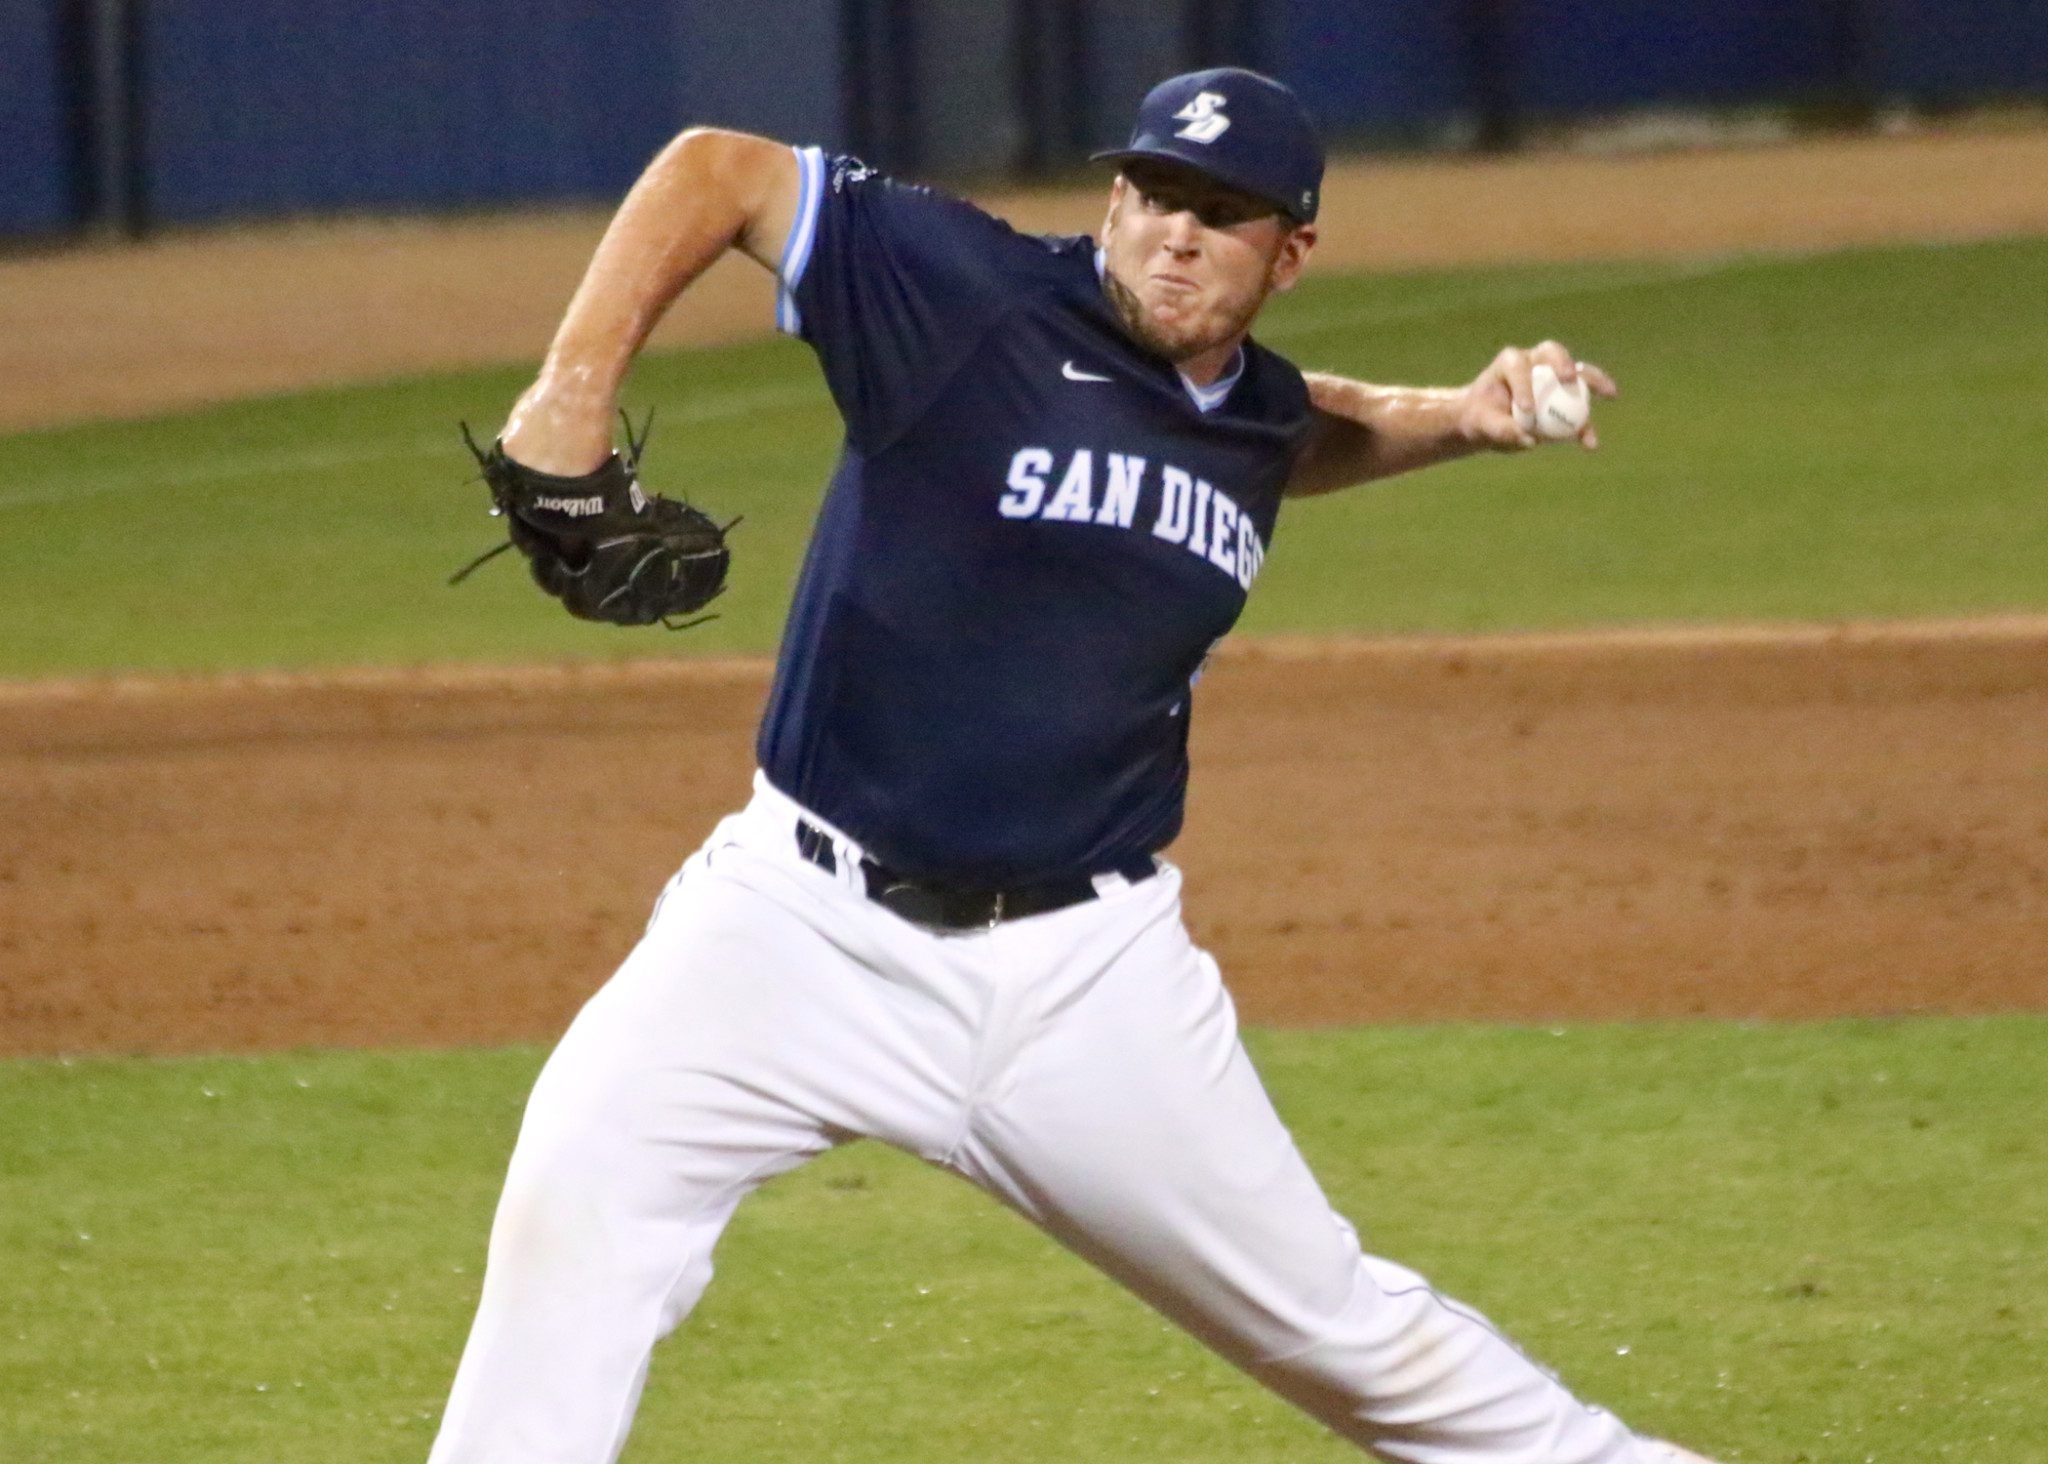 San Diego starter Troy Conyers pitched five scoreless frames. (Shotgun Spratling)